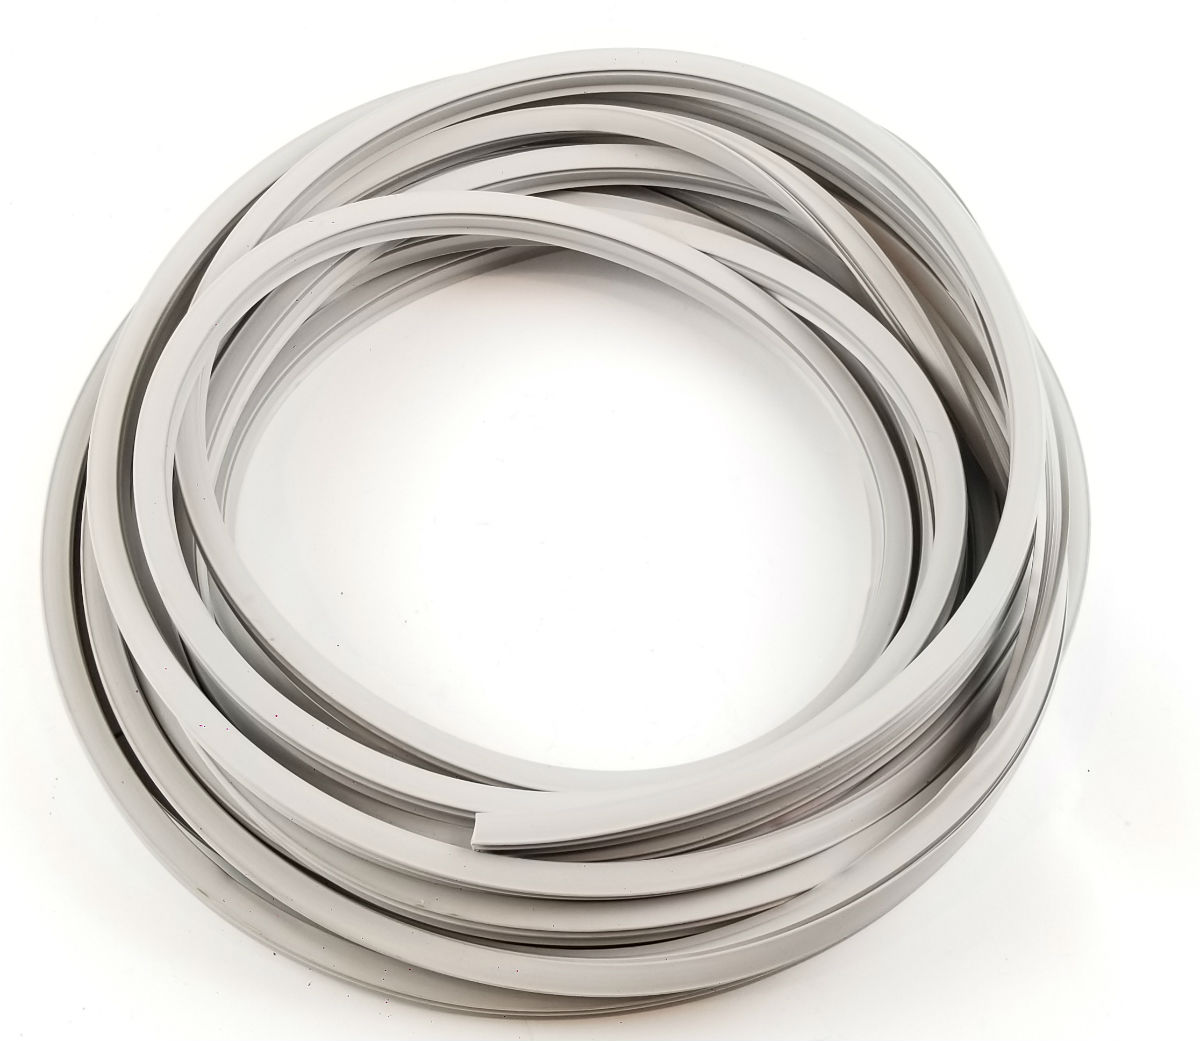 Starcraft / Jayco 0001501 Gray Roof Bulb Seal - 40 Foot Section